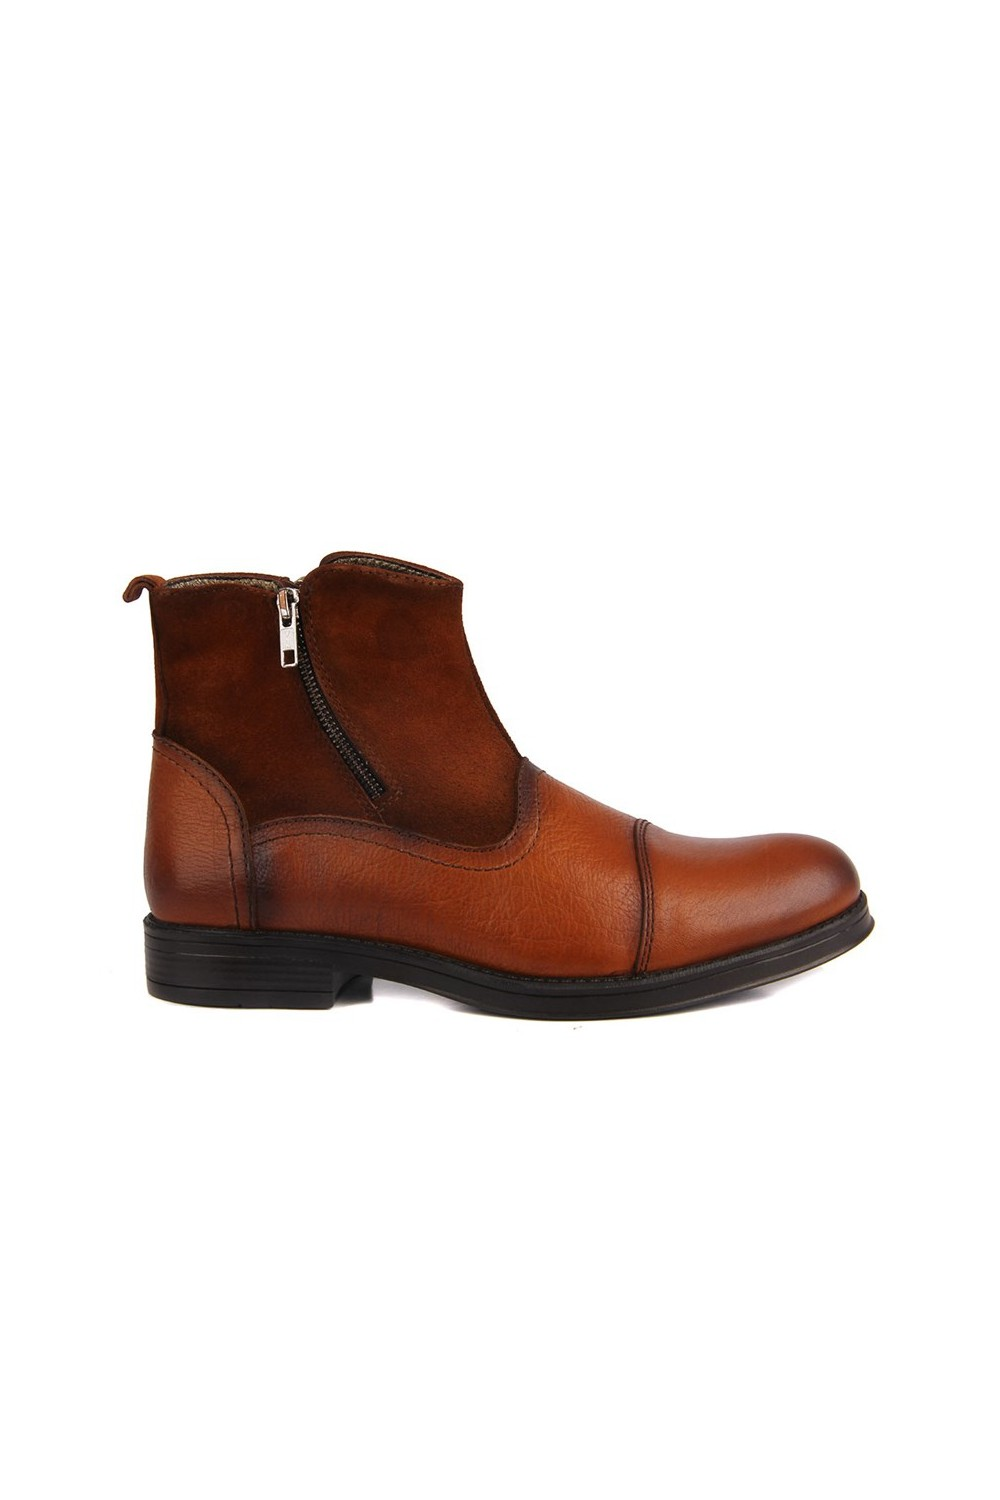 Sail Lakers Leather Men's Boots